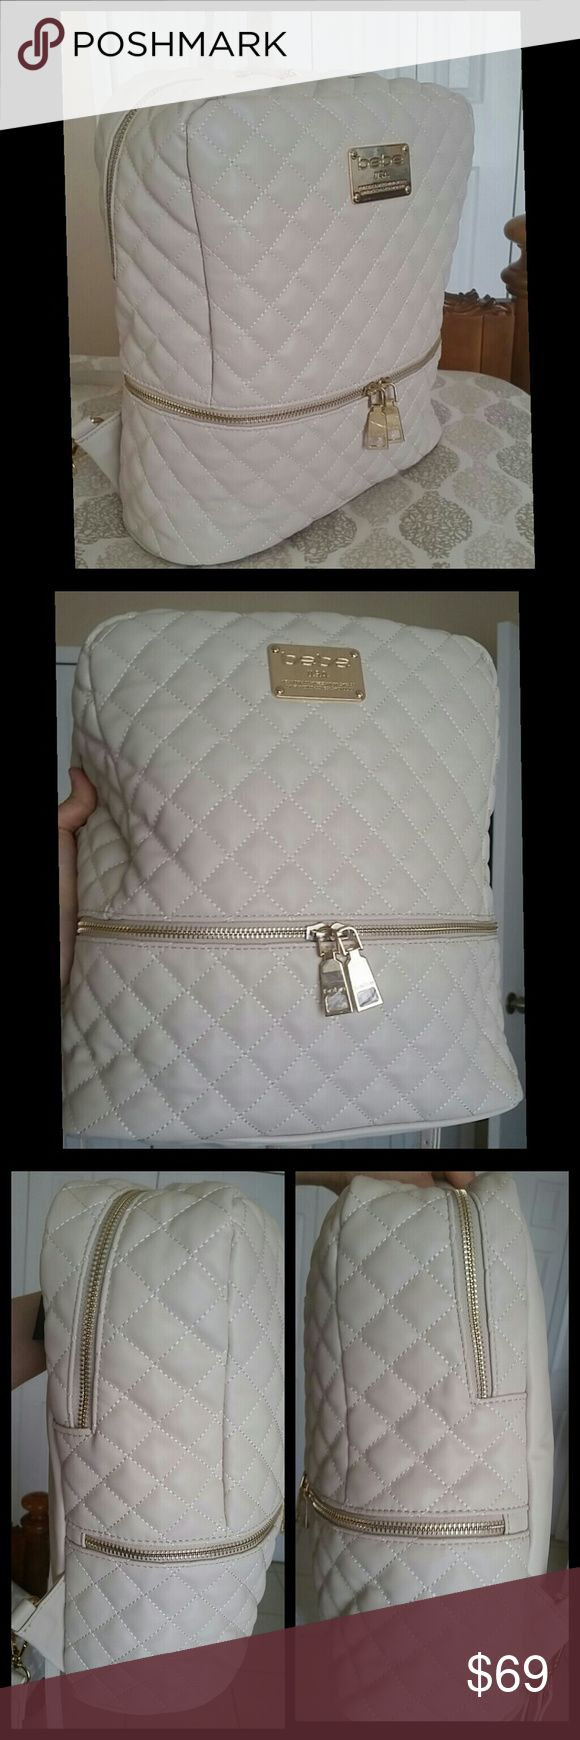 NWT Bebe Danielle Large Quilted Backpack NWT  OPEN TO OFFERS  AVAILABLE ON MERC bebe Bags Backpacks